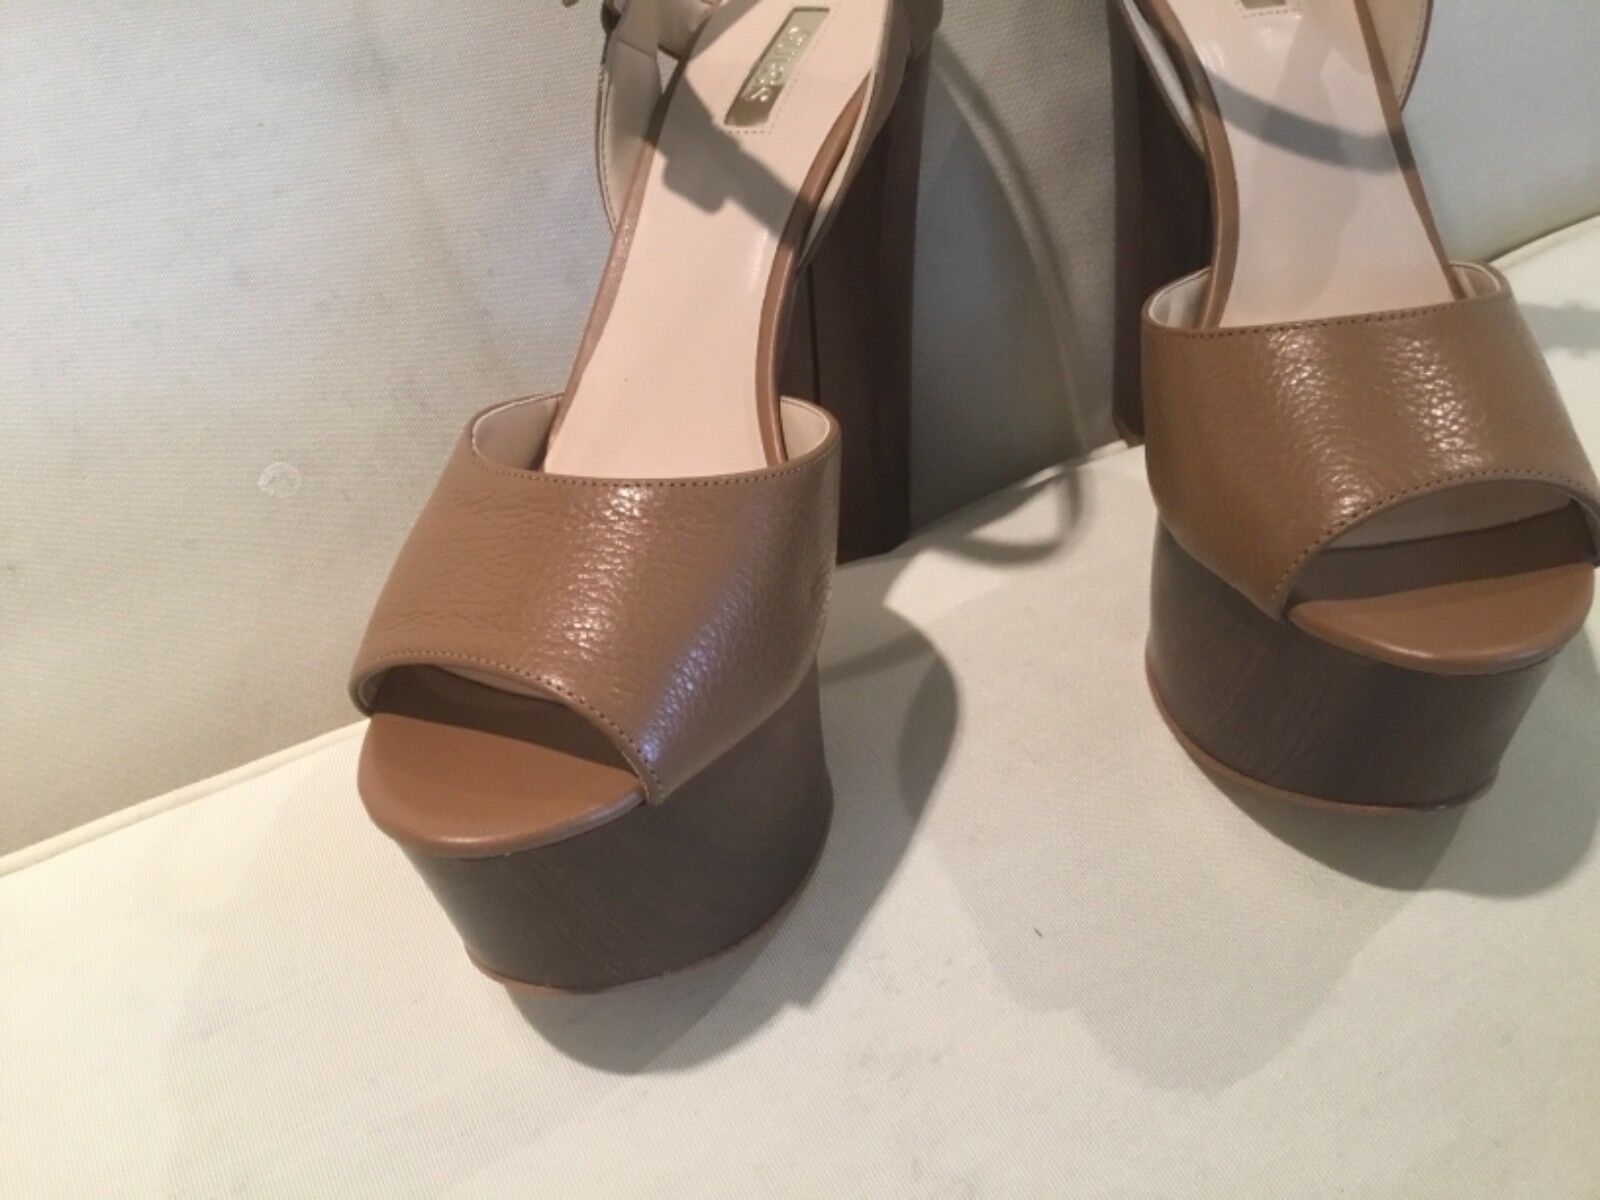 Guess Den Light Brown Leather Stack Tall shoes shoes shoes Women's 9 1 2  M New Heel Platform ac3802